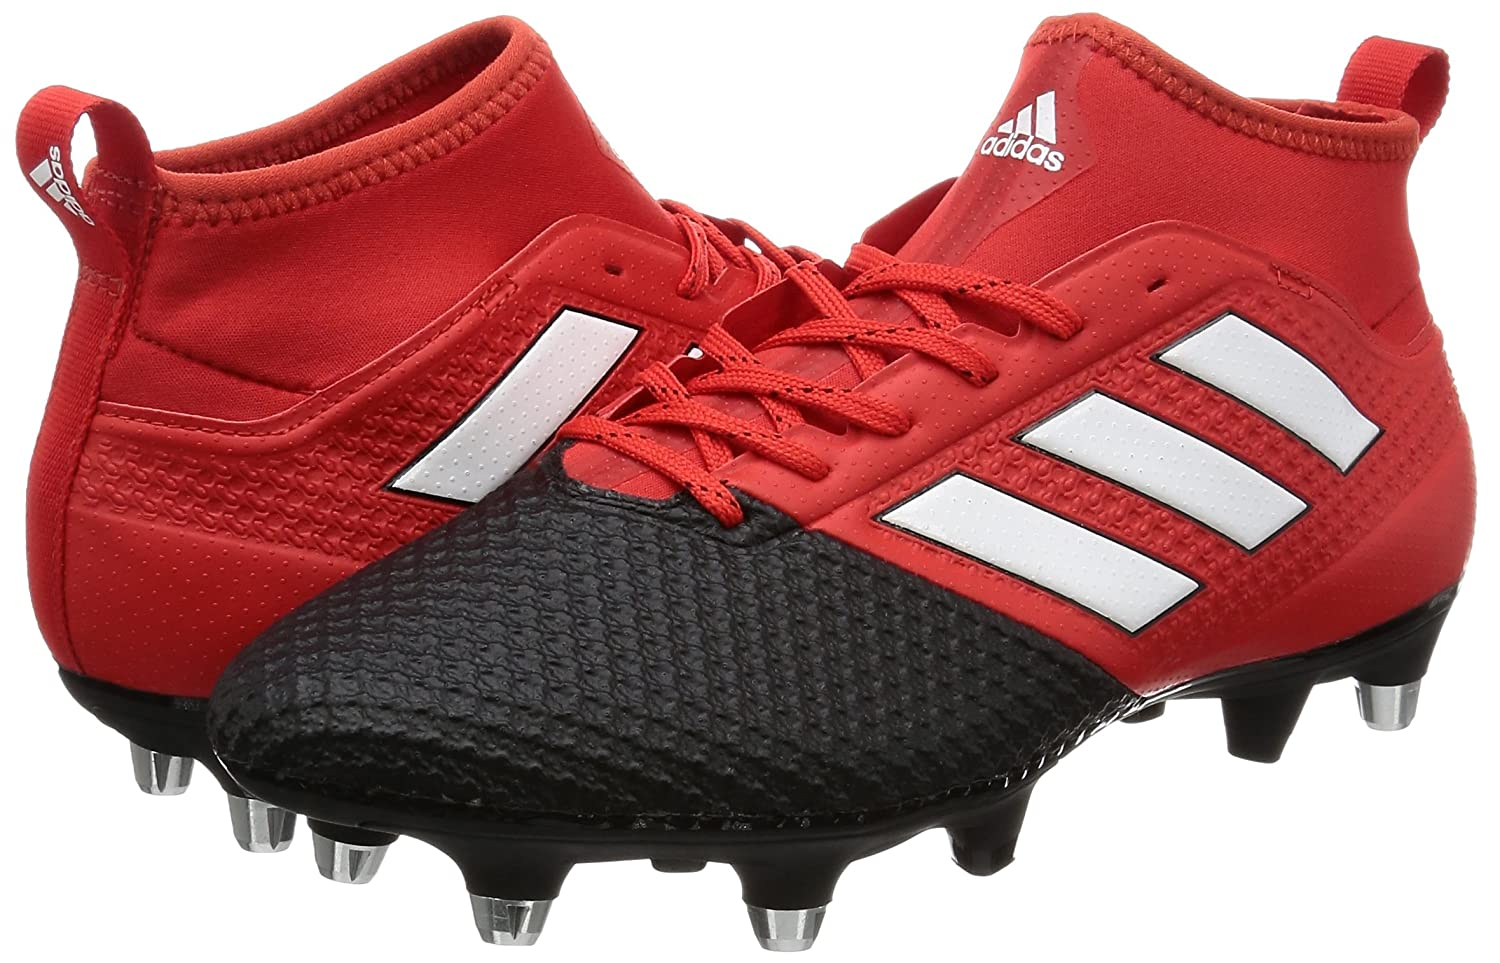 Adidas Ace 17.3 Primemesh Soft Ground 5a7aac9f5a175